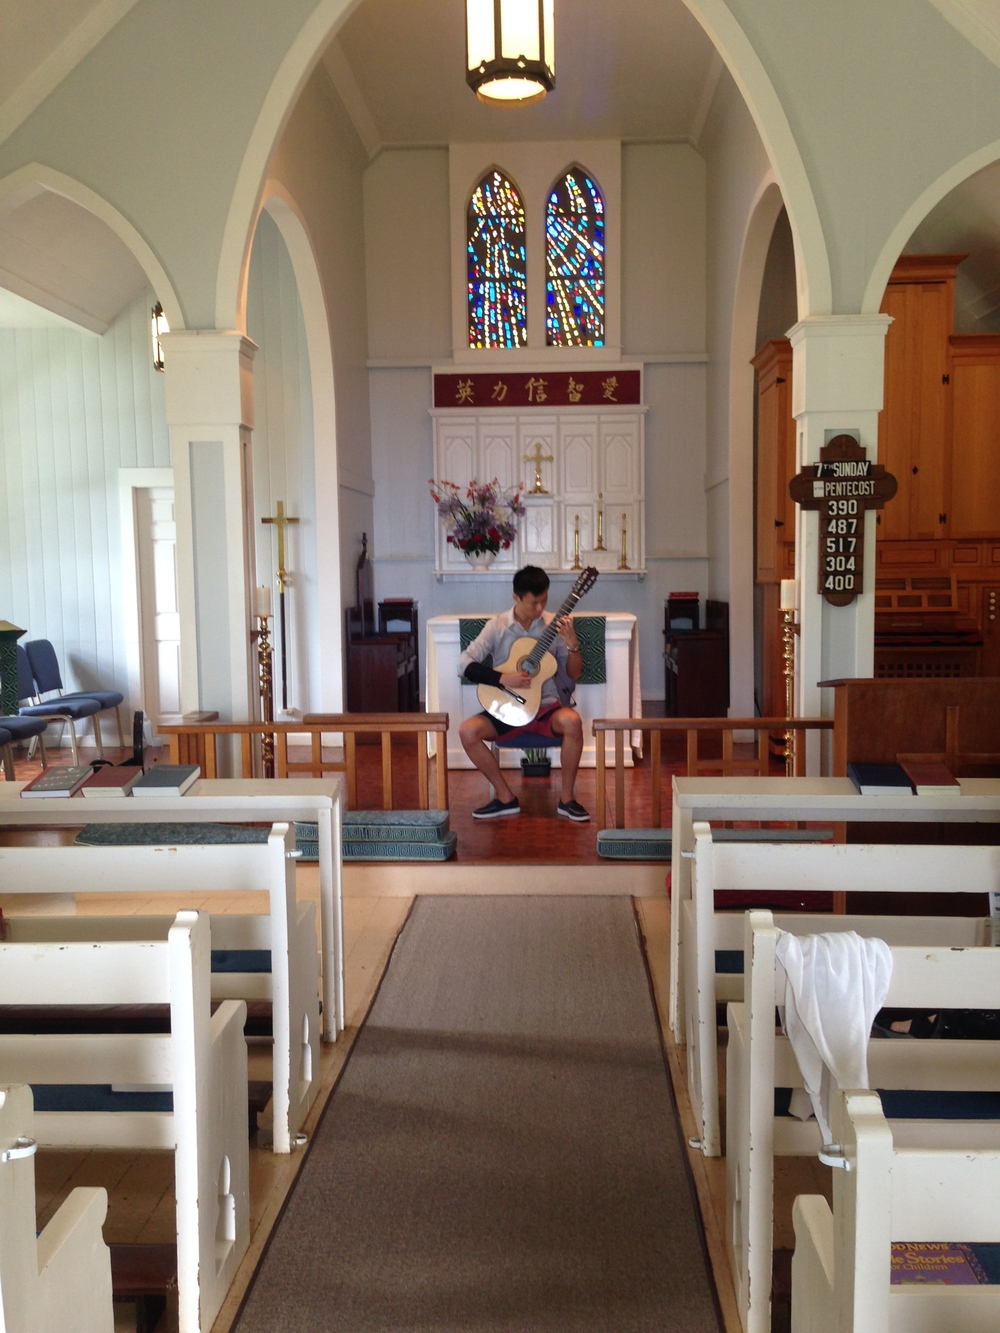 Ray Zhou warming up at St. John's Church, Kula (2014)